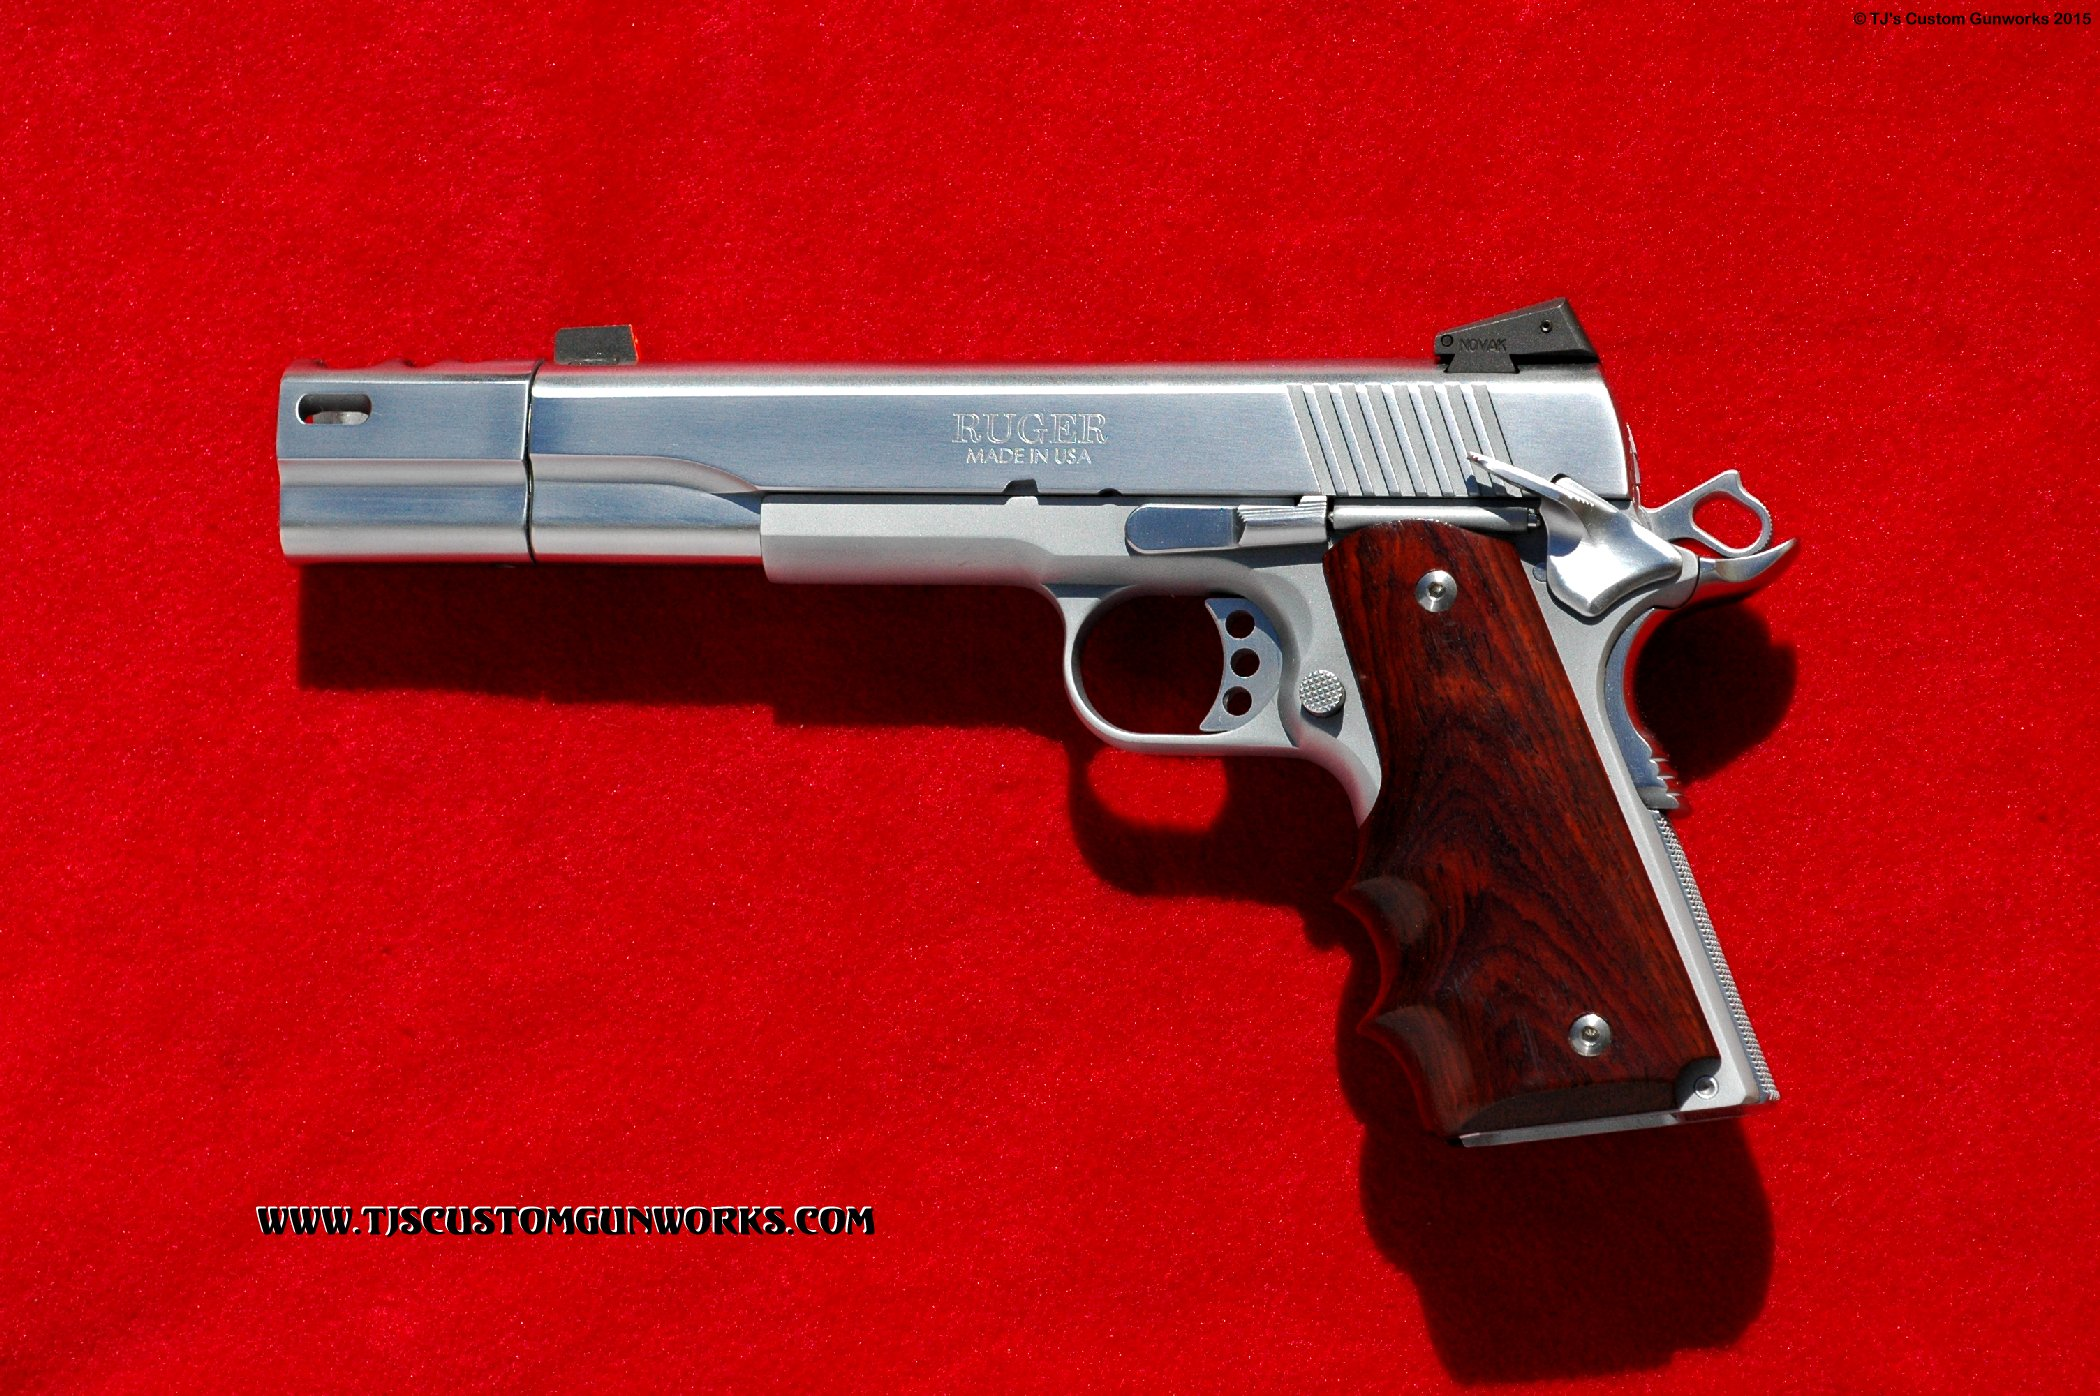 1911 Compensator Stainless – Wonderful Image Gallery